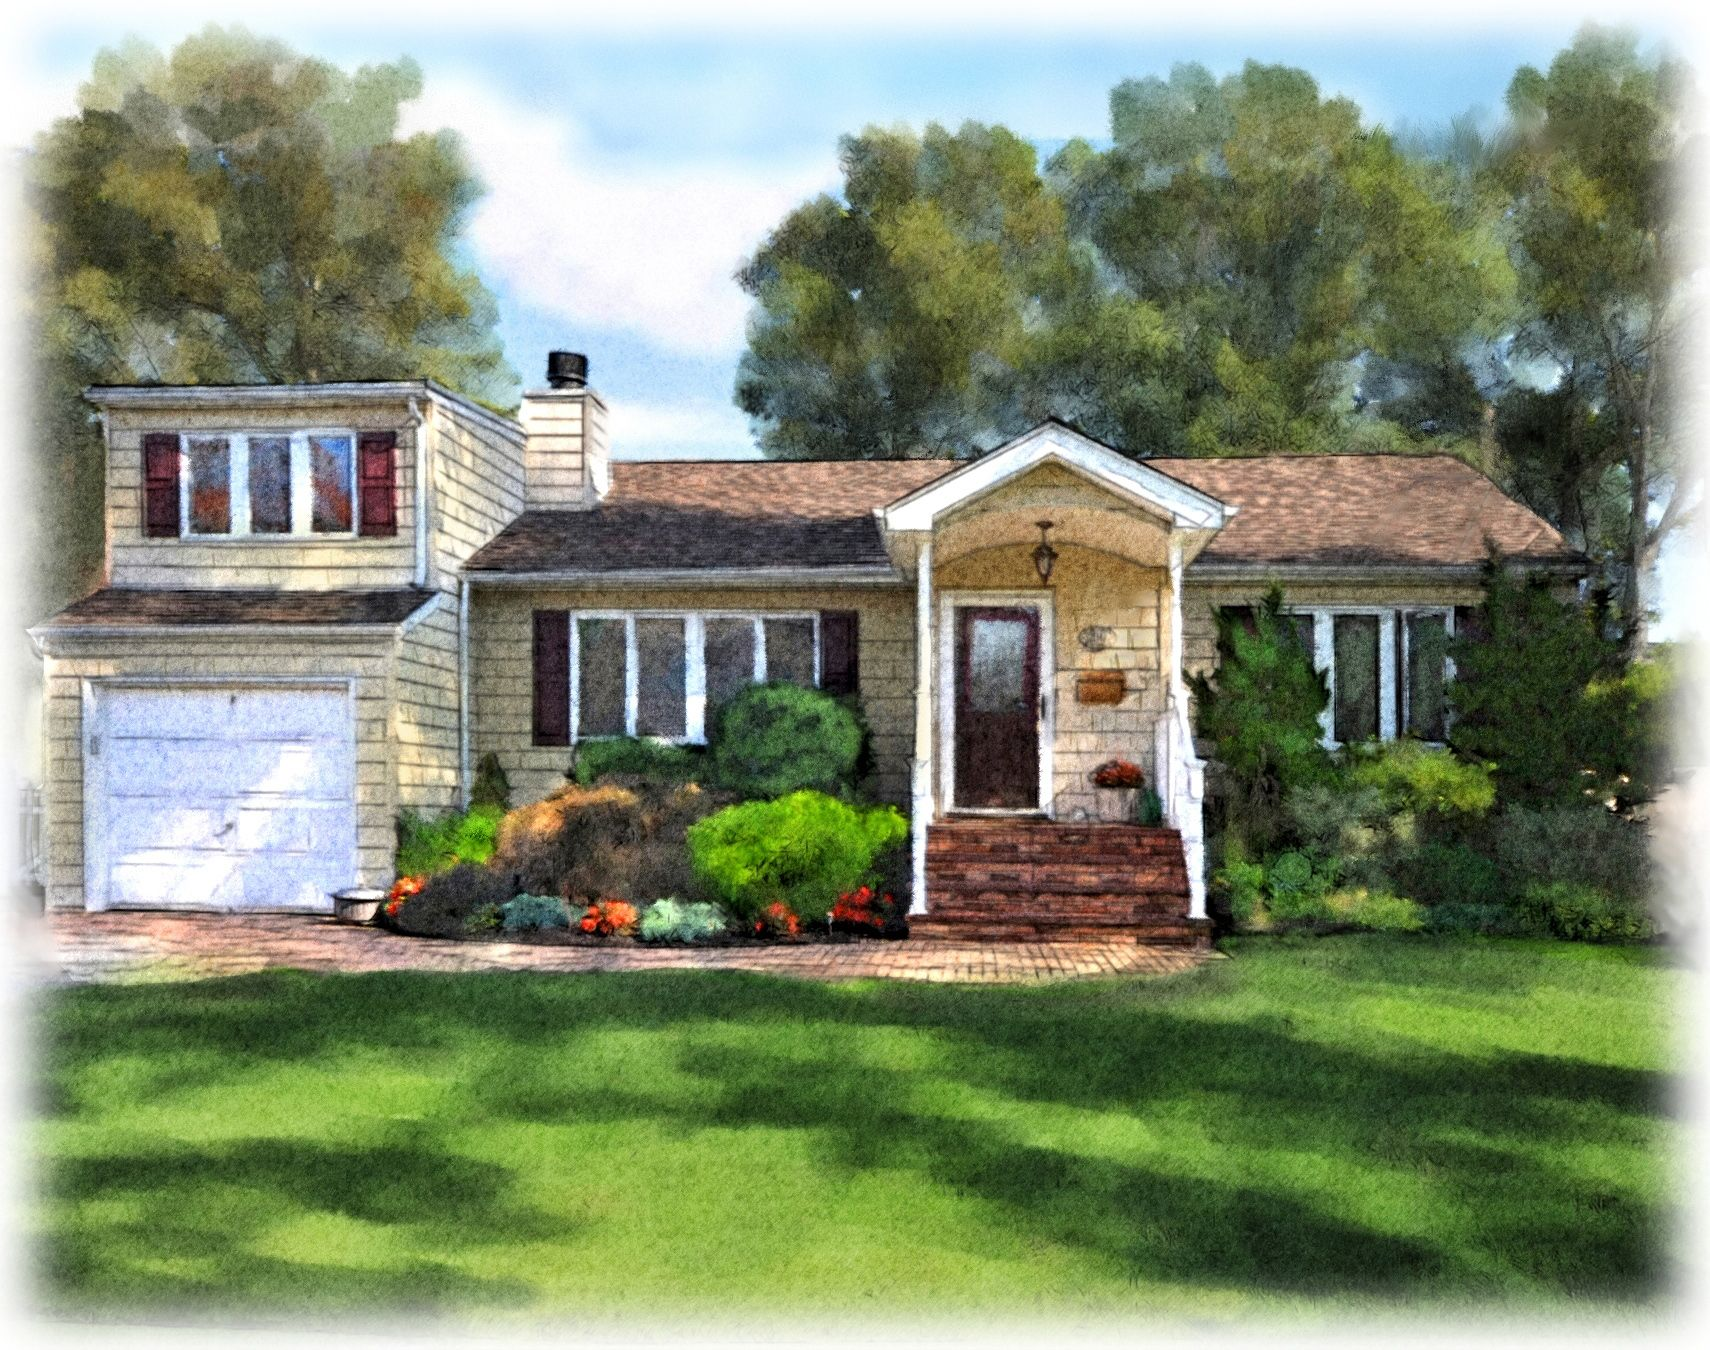 House Painting Stamford Ct Expert House Painters Home Painting Certapro Painters House Portraits Watercolor House Painting House Painting